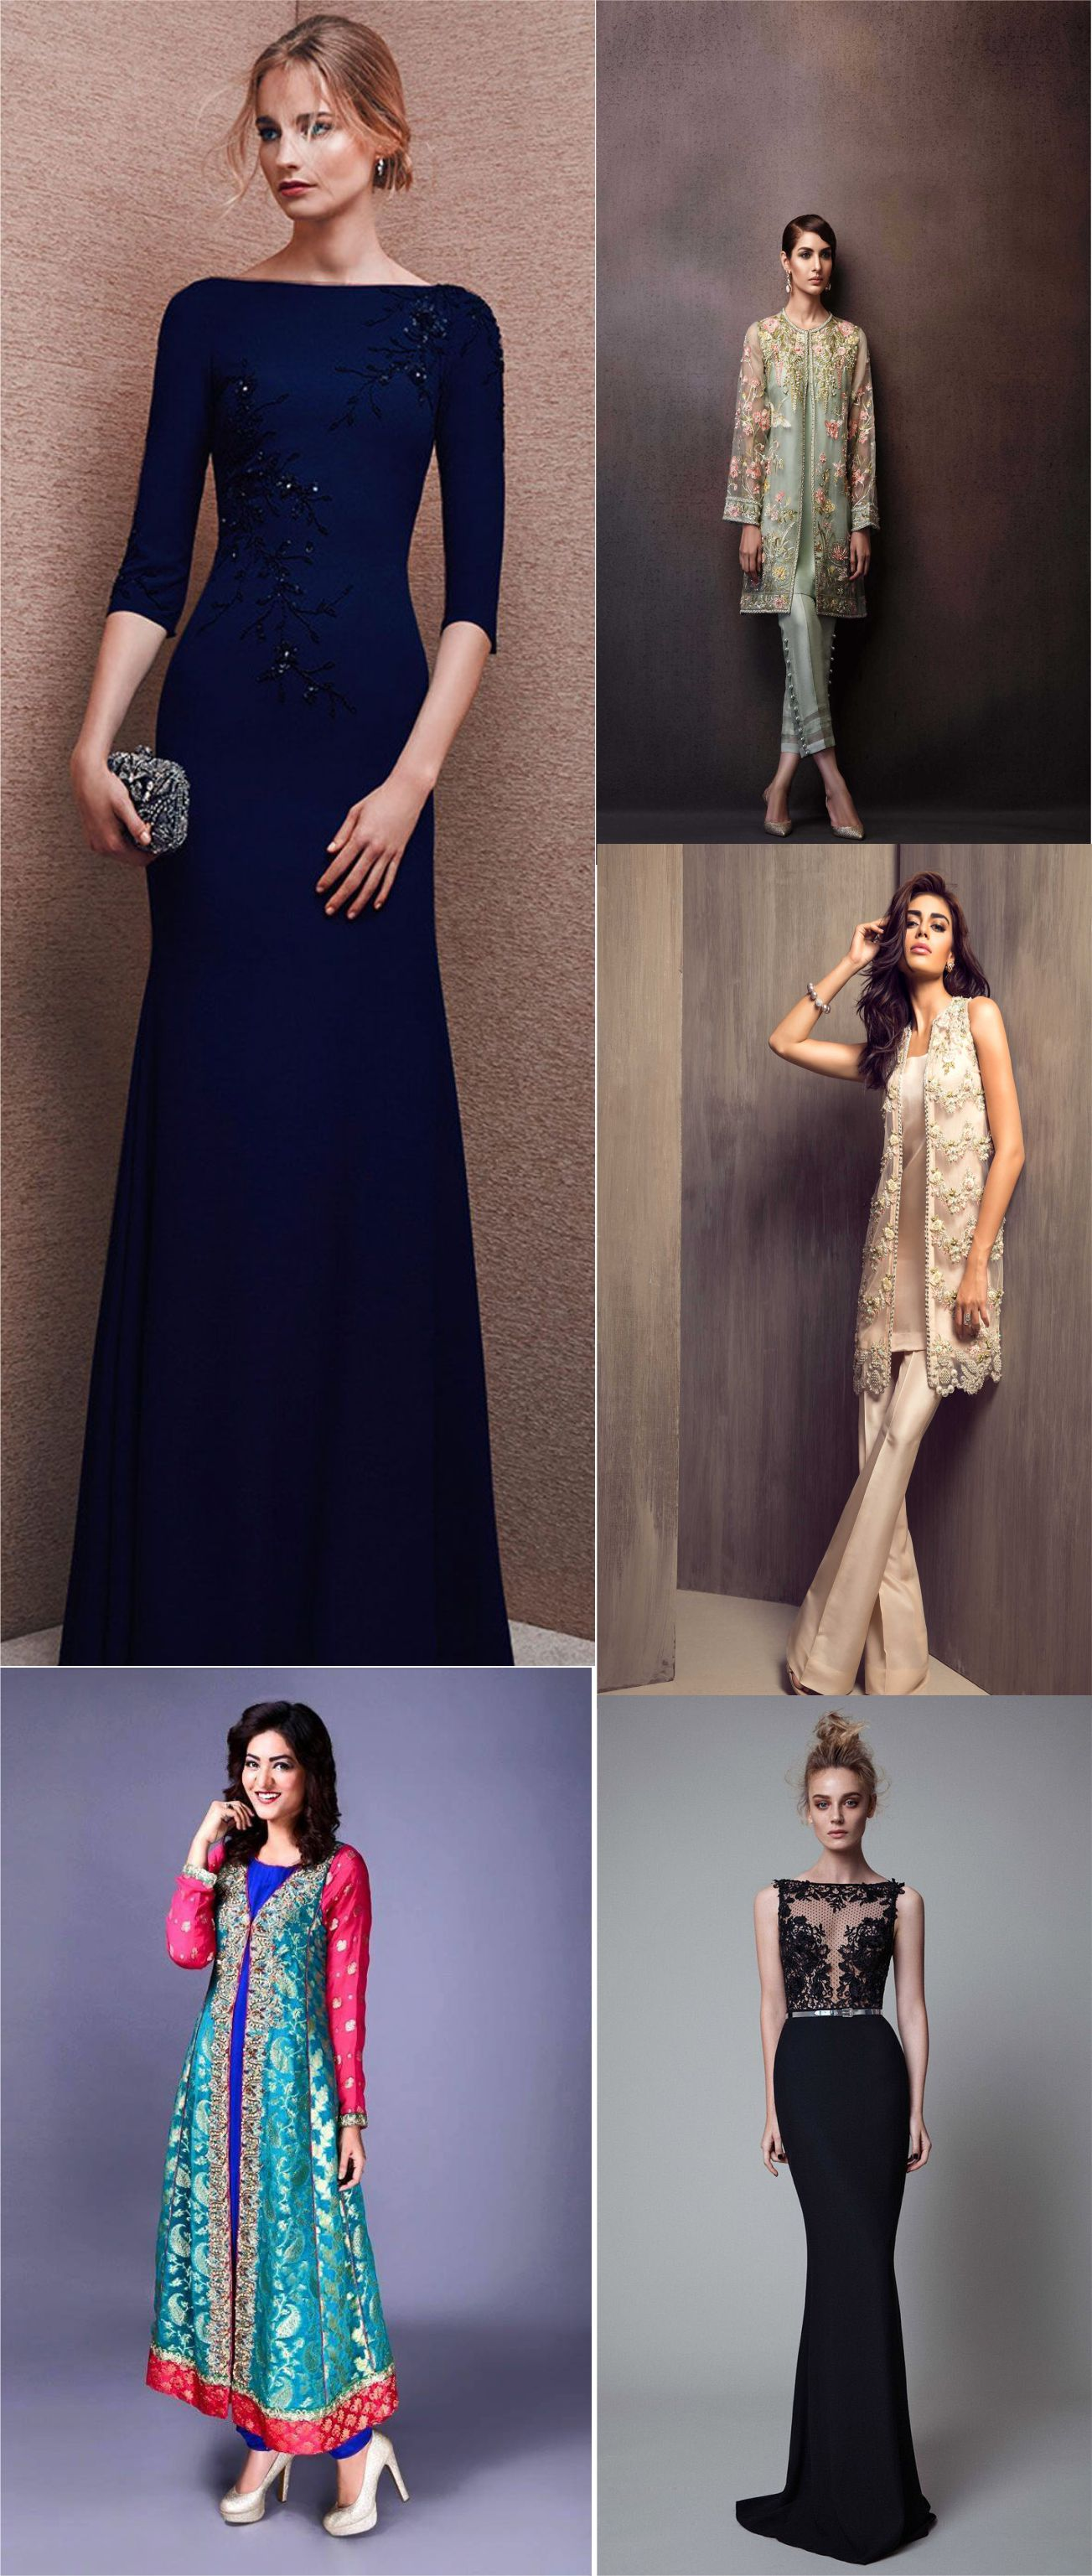 2018 Best Stylish formal dresses